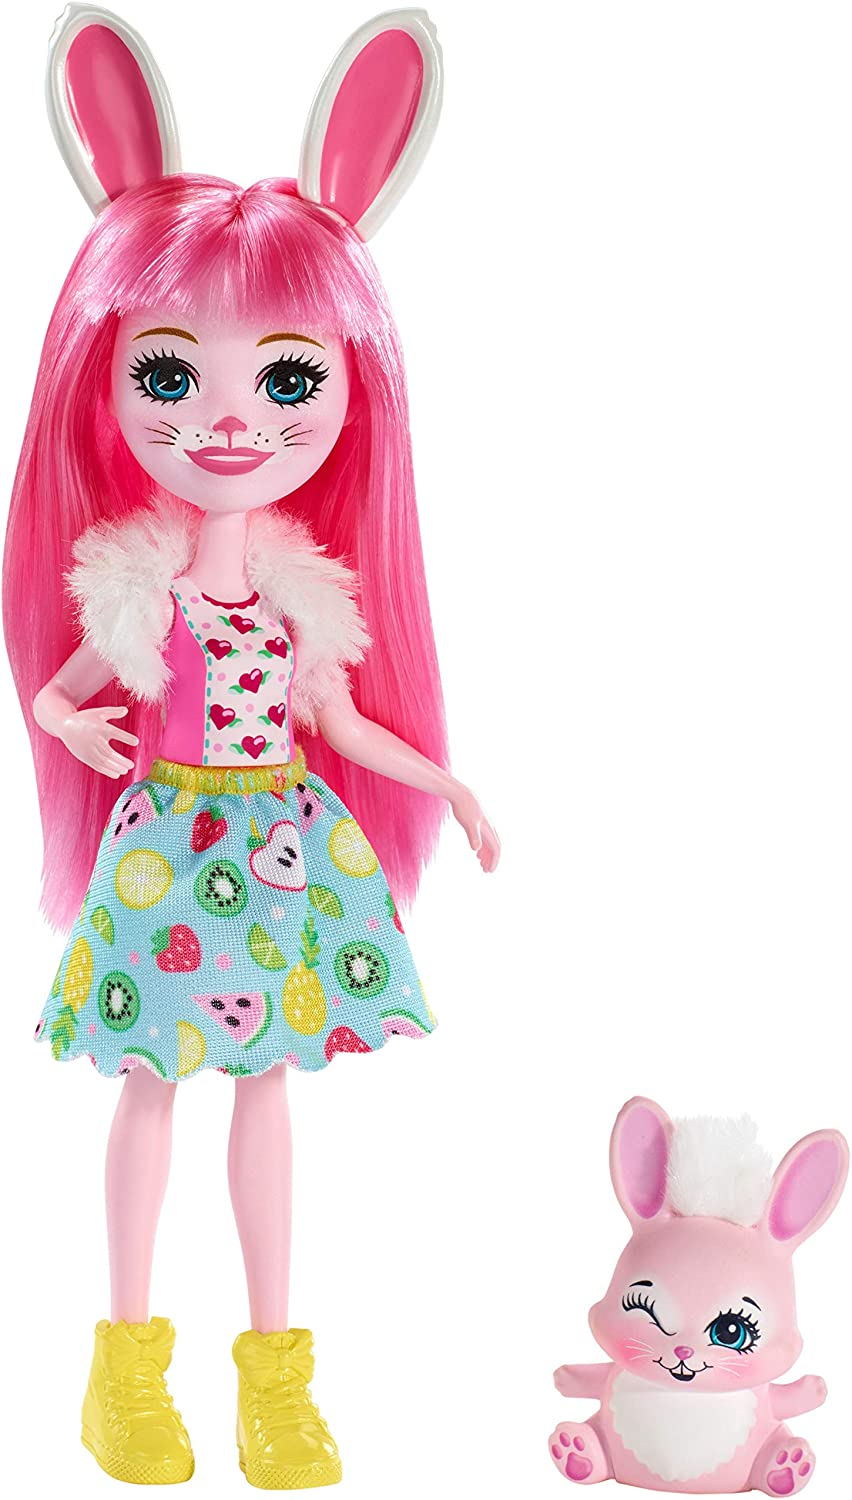 Enchantimals Bree Bunny Doll & Twist Figure, 6-inch small doll, with long pink hair, animal ears and tail, removable skirt, shrug and shoes, Gift for 3 to 8 Year Olds [Amazon Exclusive]